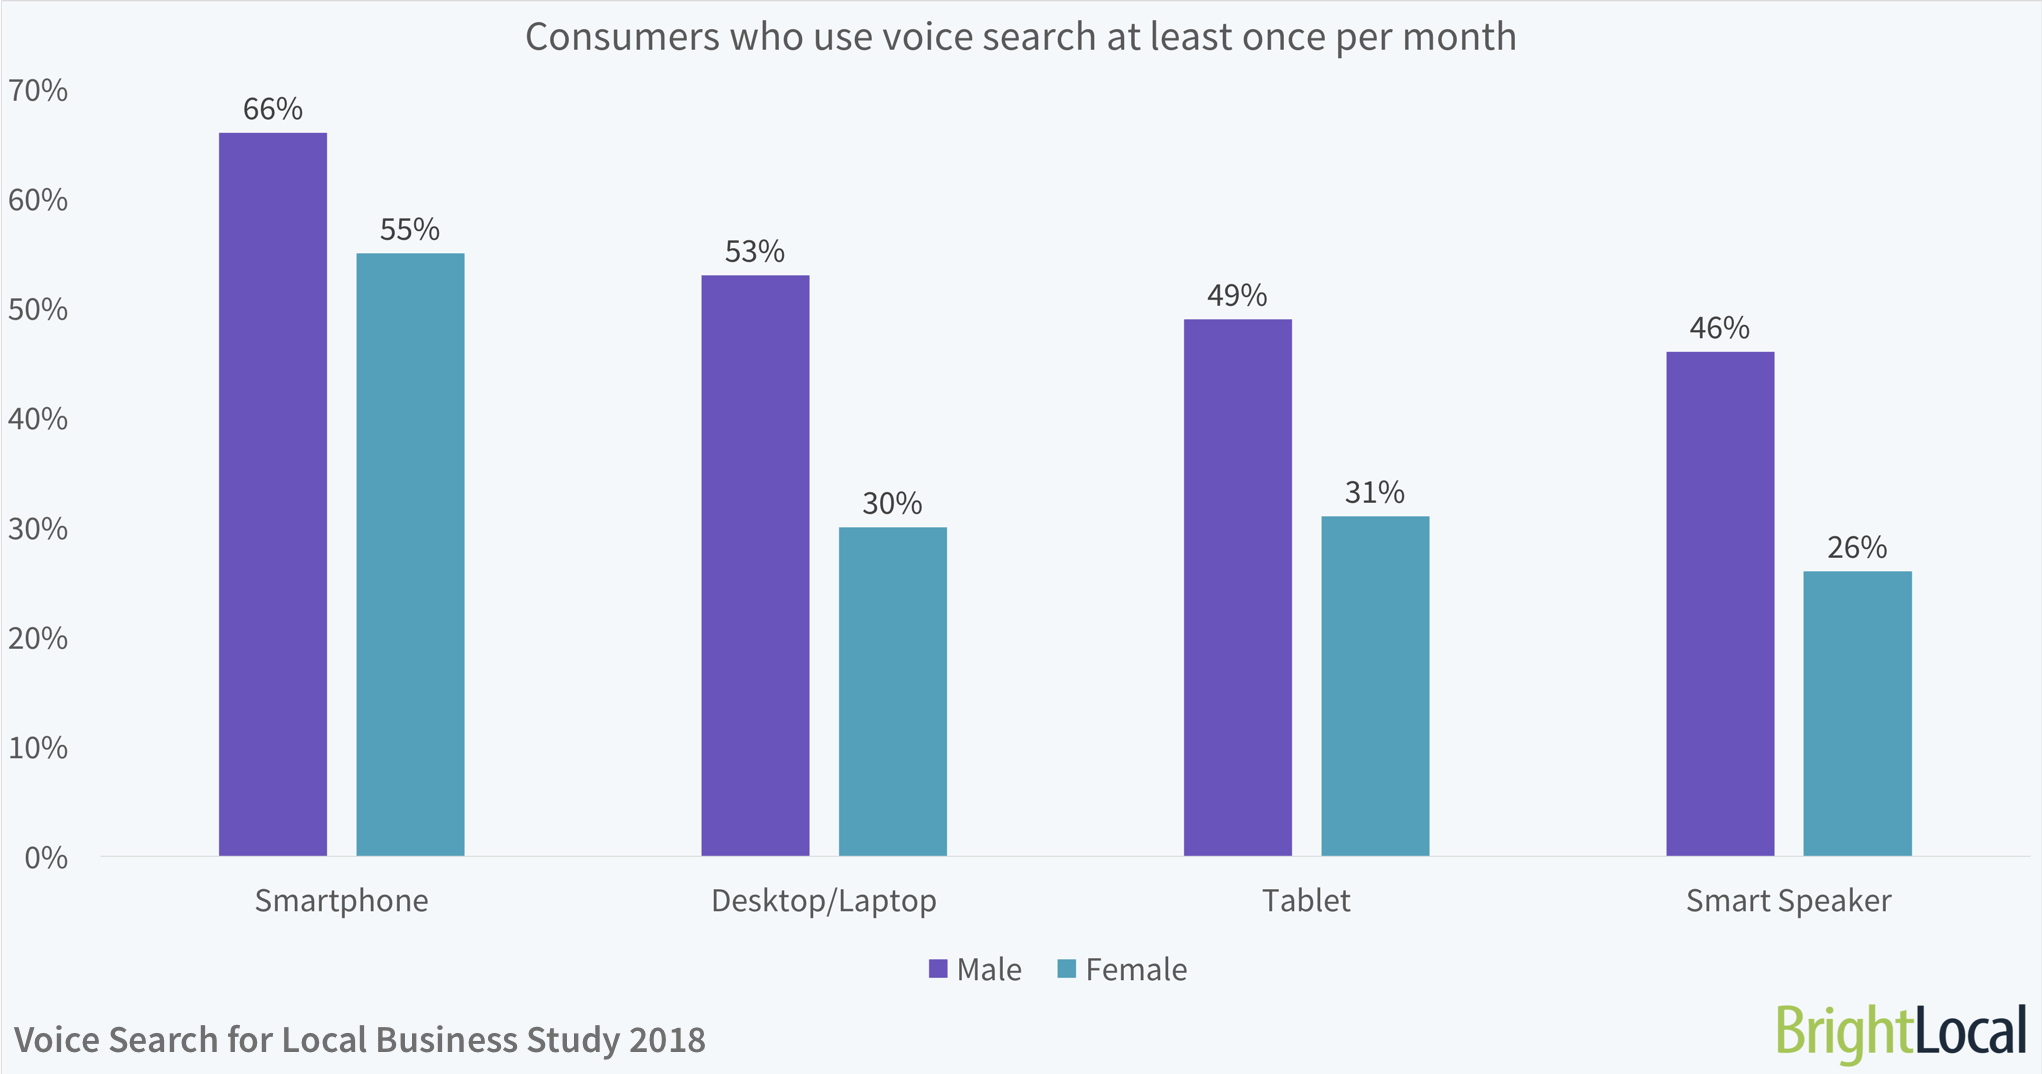 Gender: Consumers who use voice search at least once per month | BrightLocal Voice Search for Local Business Study